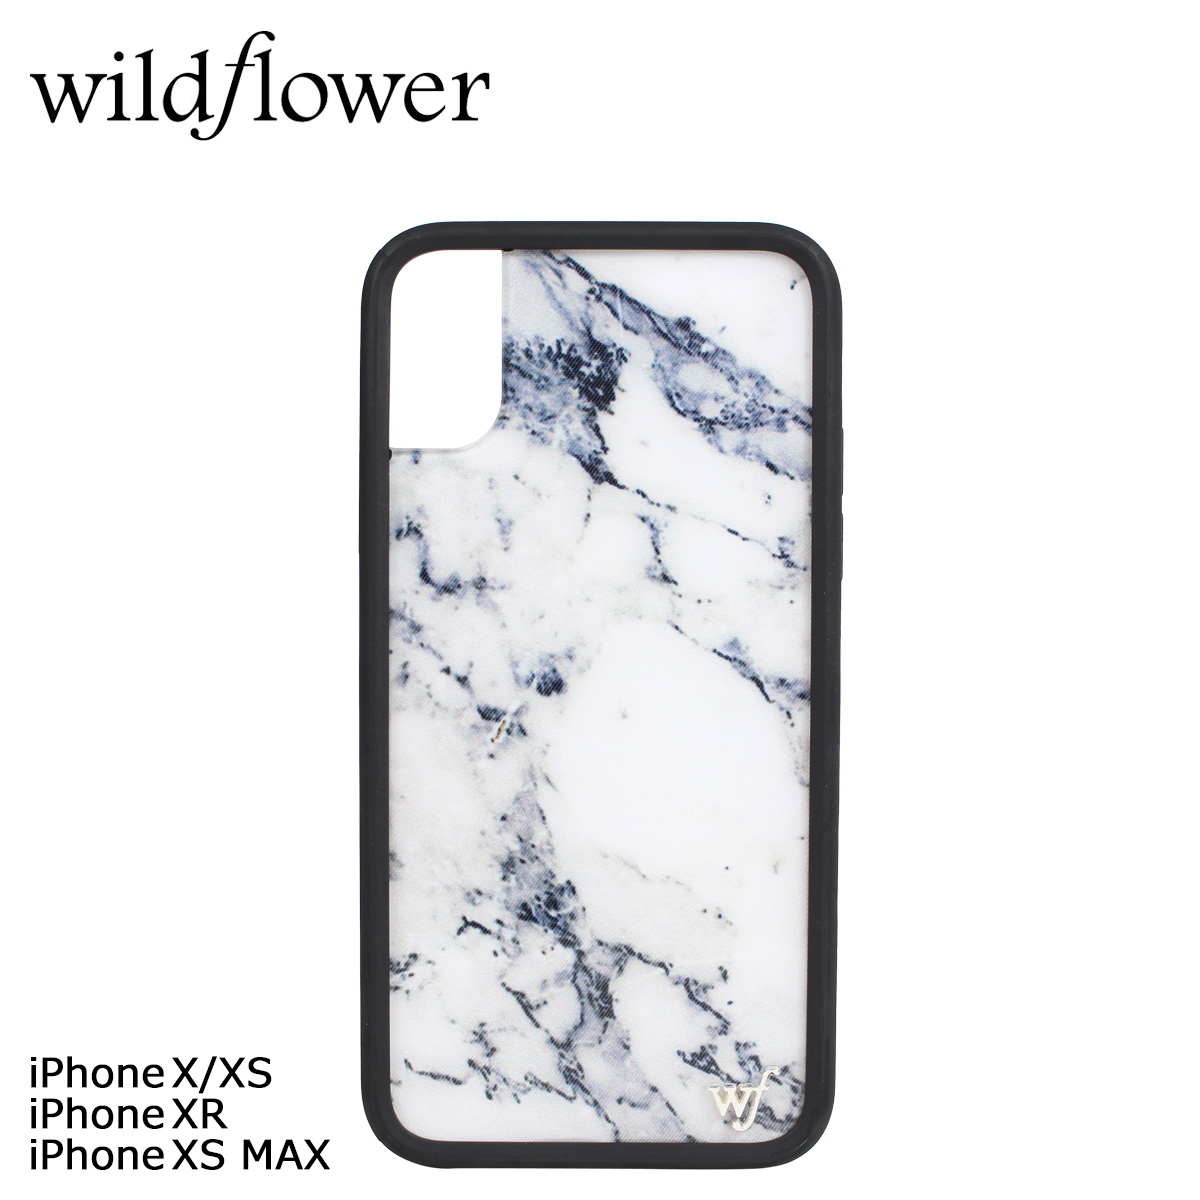 save off 9ecd9 bf789 Wild flower wildflower iPhone XR X XS MAX iPhone case smartphone eyephone  smartphone Lady's marble white white MARB